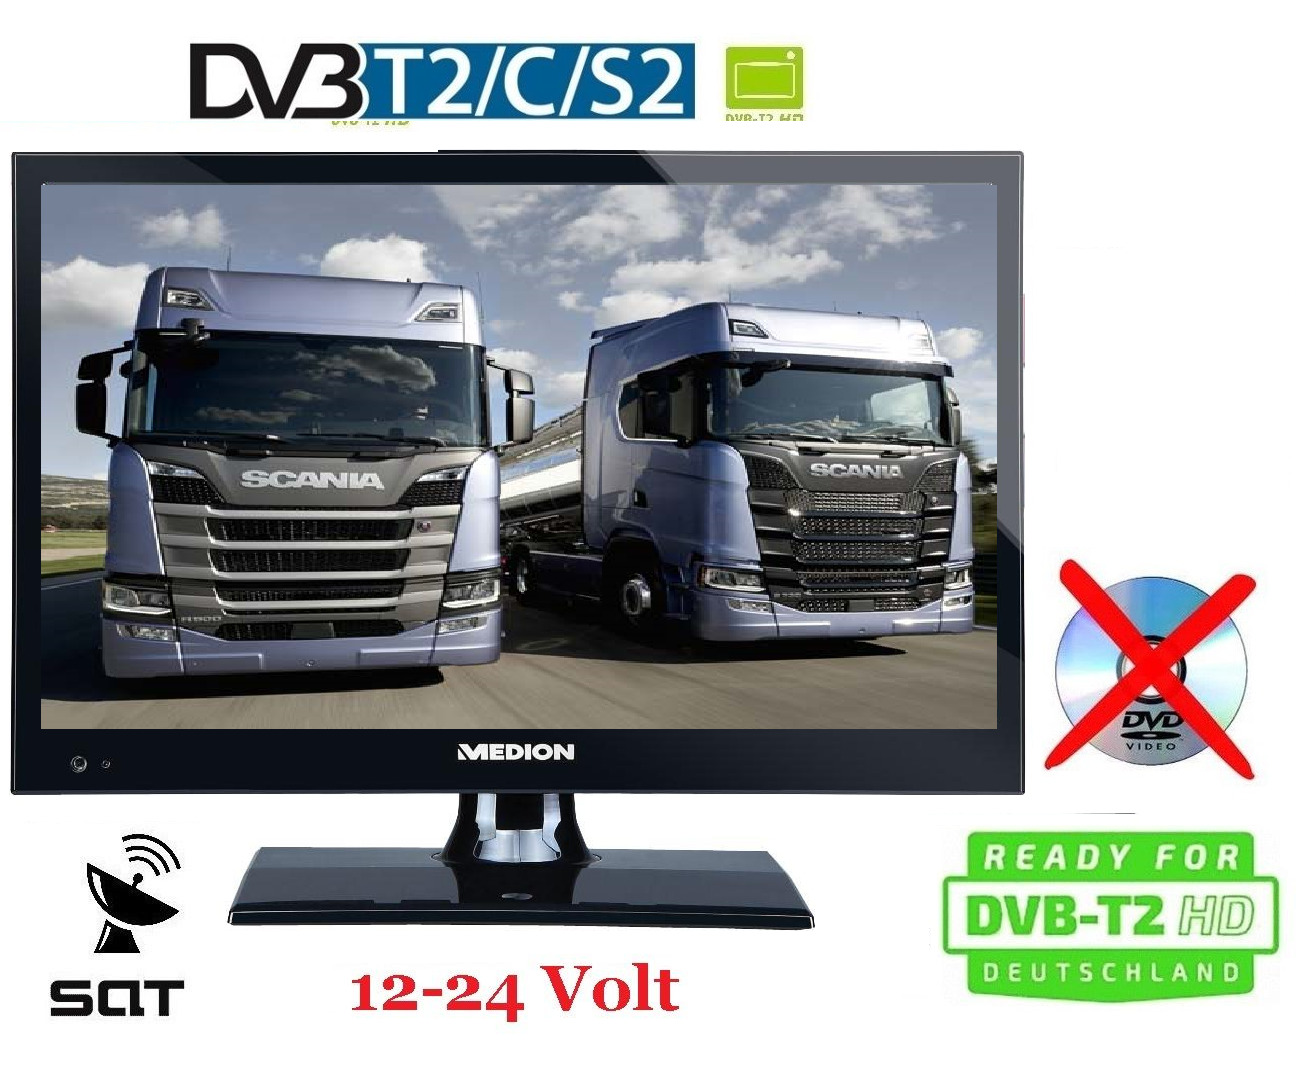 led tv 15 6 zoll 39 6cm fernseher dvb c s2 t2 hd 12 24v. Black Bedroom Furniture Sets. Home Design Ideas